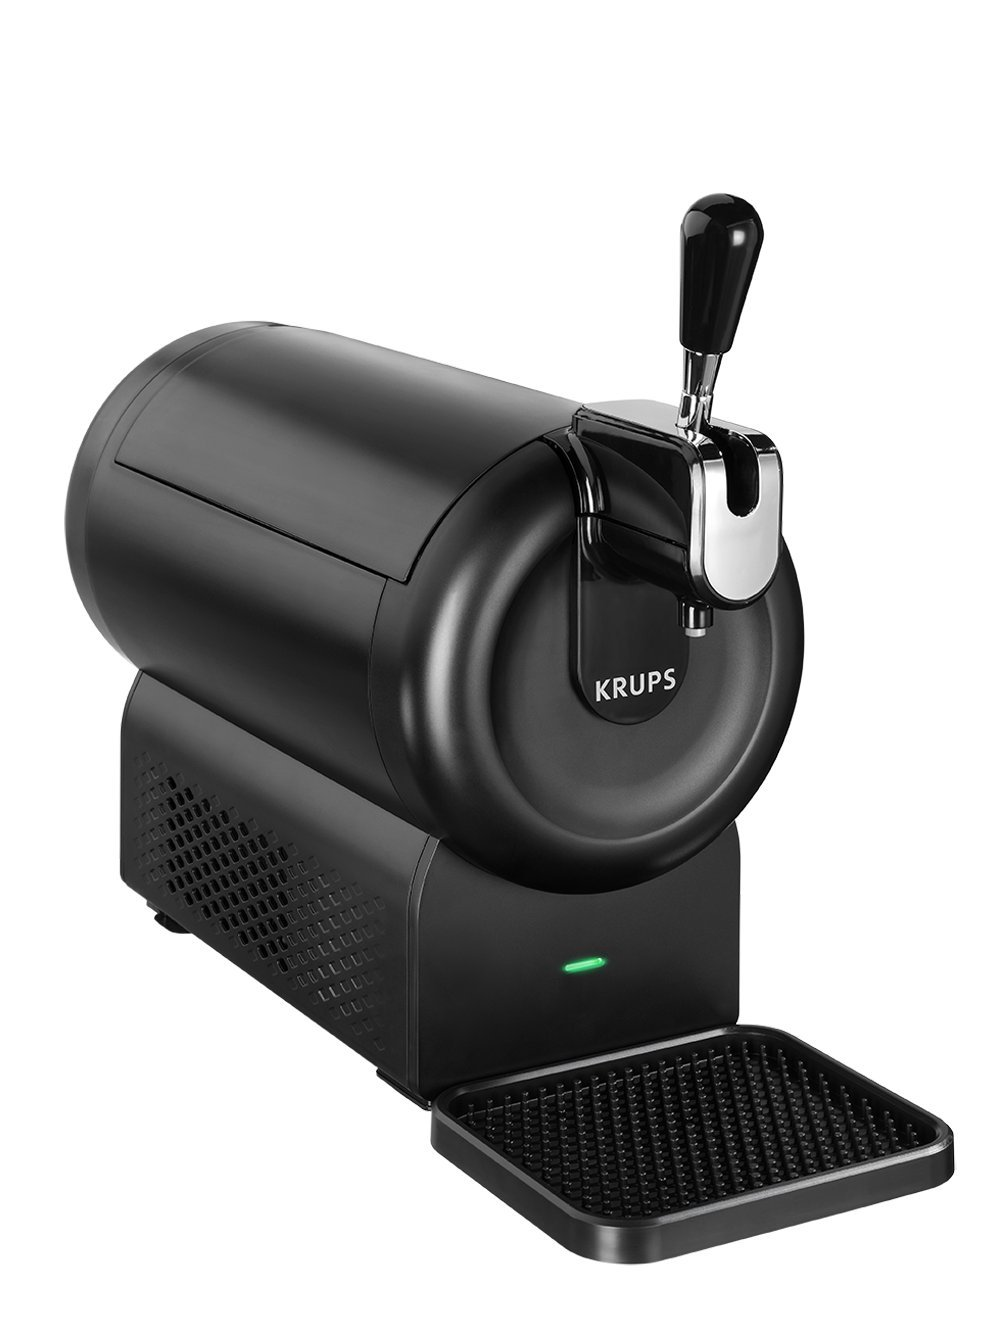 Krups The Sub Compact VB641810 - Tirador/Dispensador de cerveza para barriles de 2 L